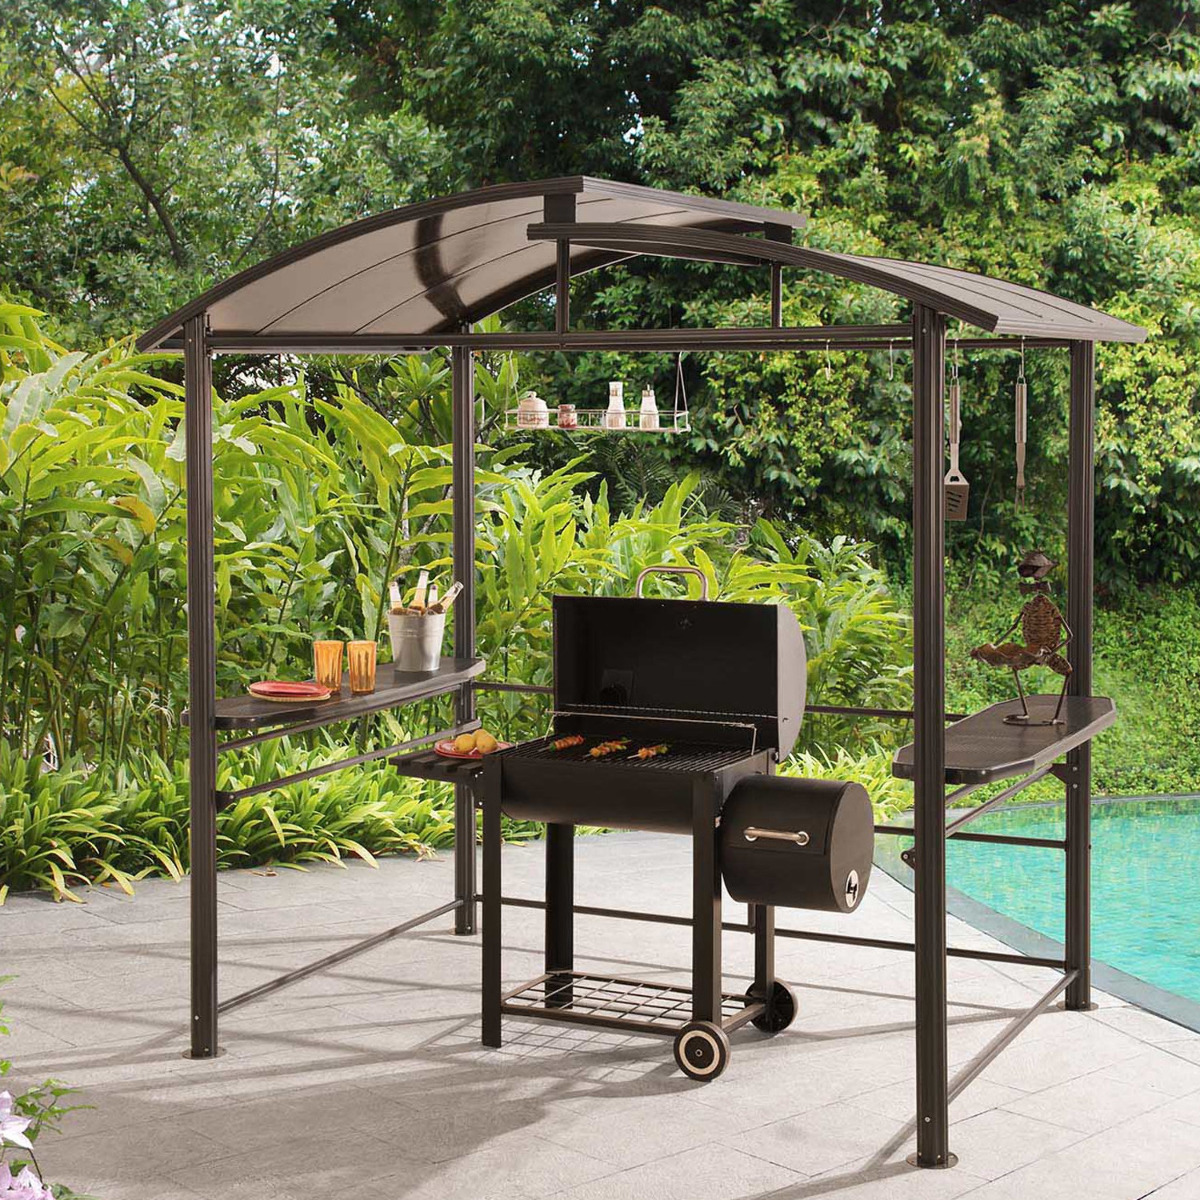 Denver Steel Grill Gazebo 7.6-ft x 4.9-ft Outdoor Patio ... on Outdoor Grill Patio id=77019